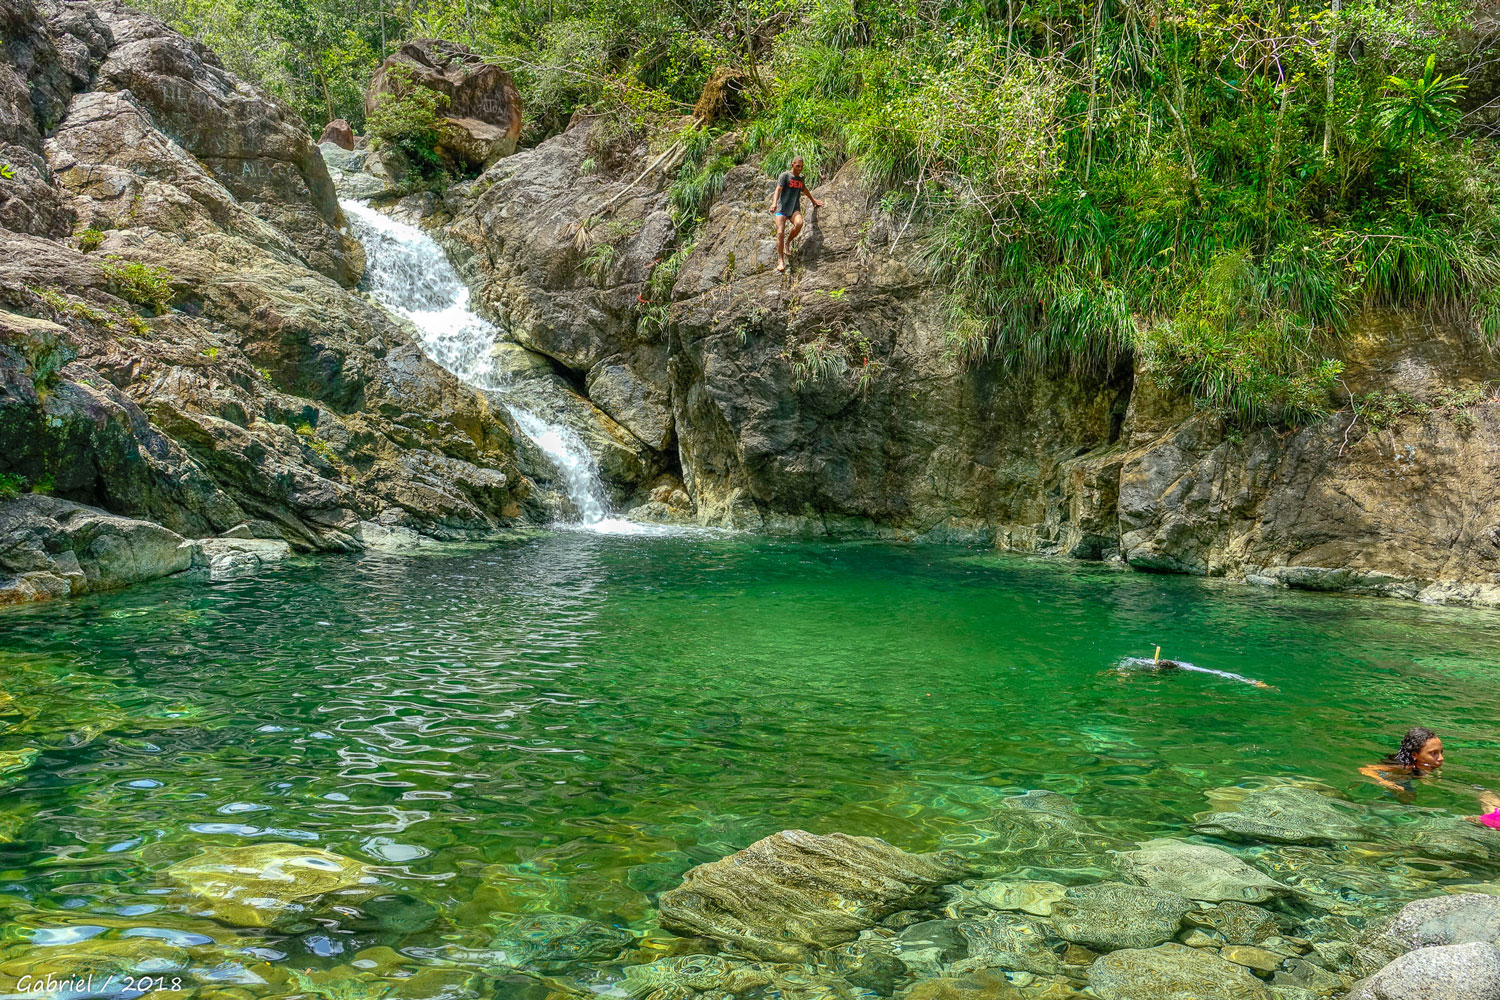 The six biosphere reserves in Cuba